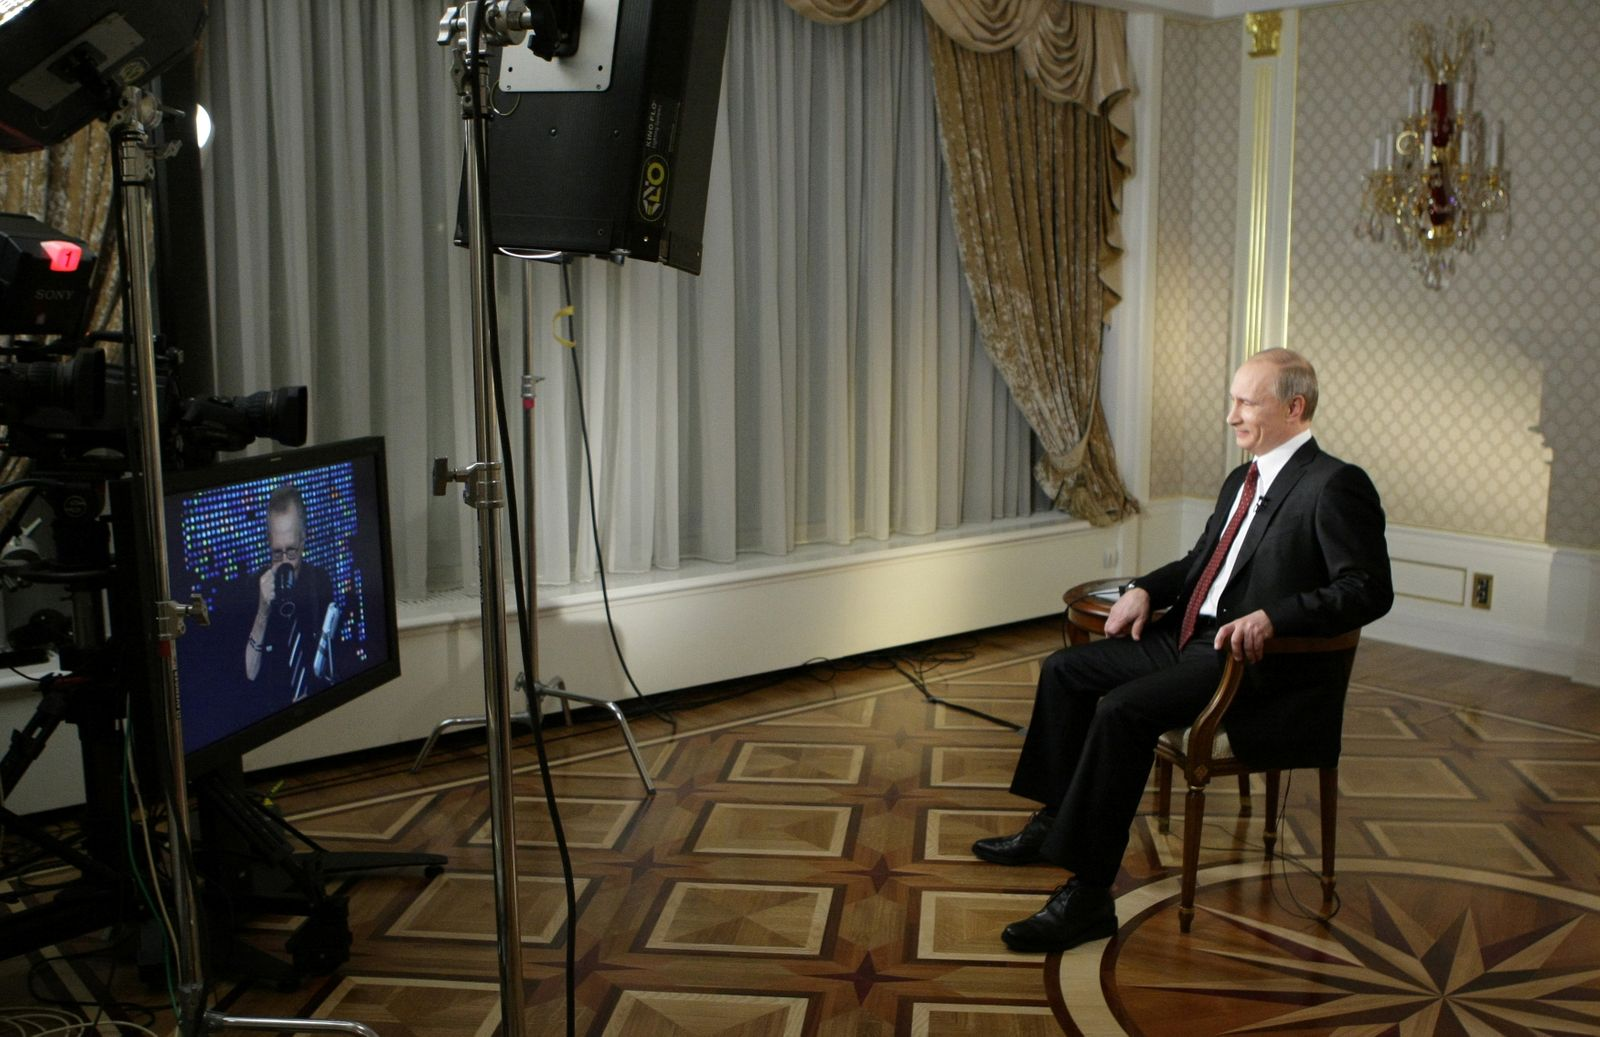 FILE PHOTO: Russia's Prime Minister Putin smiles during an interview with Larry King in Moscow